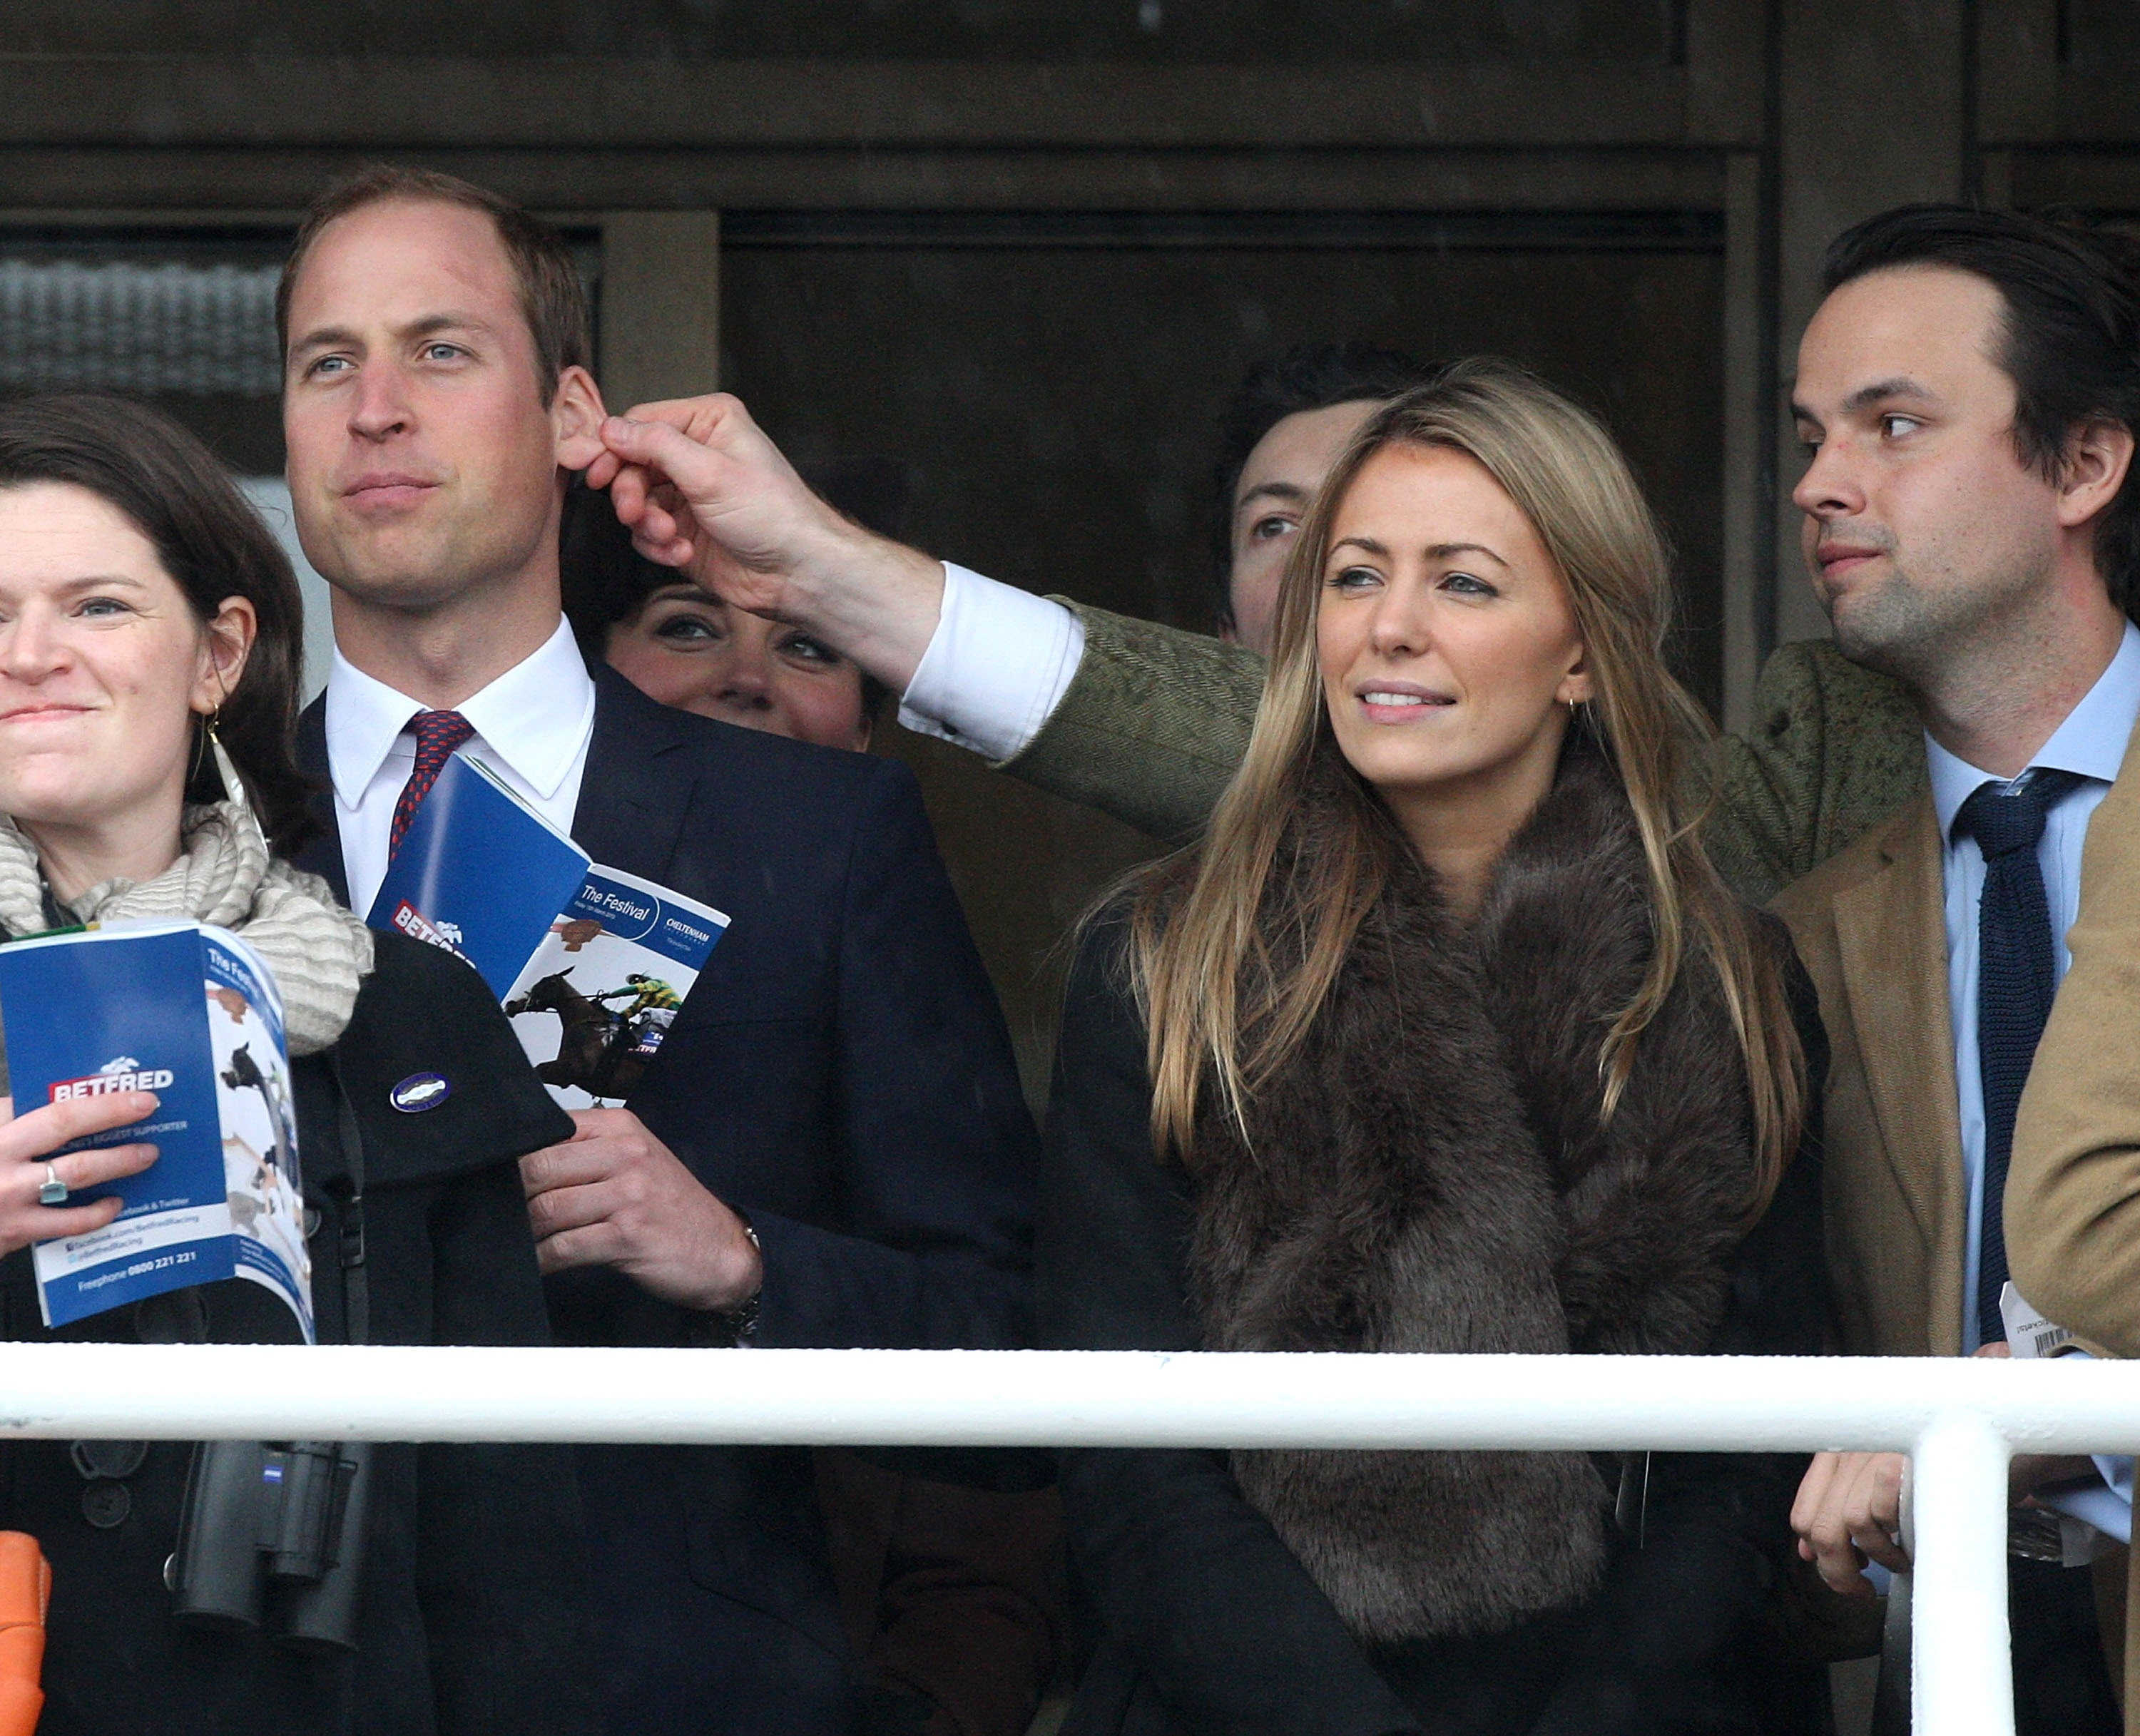 Well Played Weekend, Kate and Wills